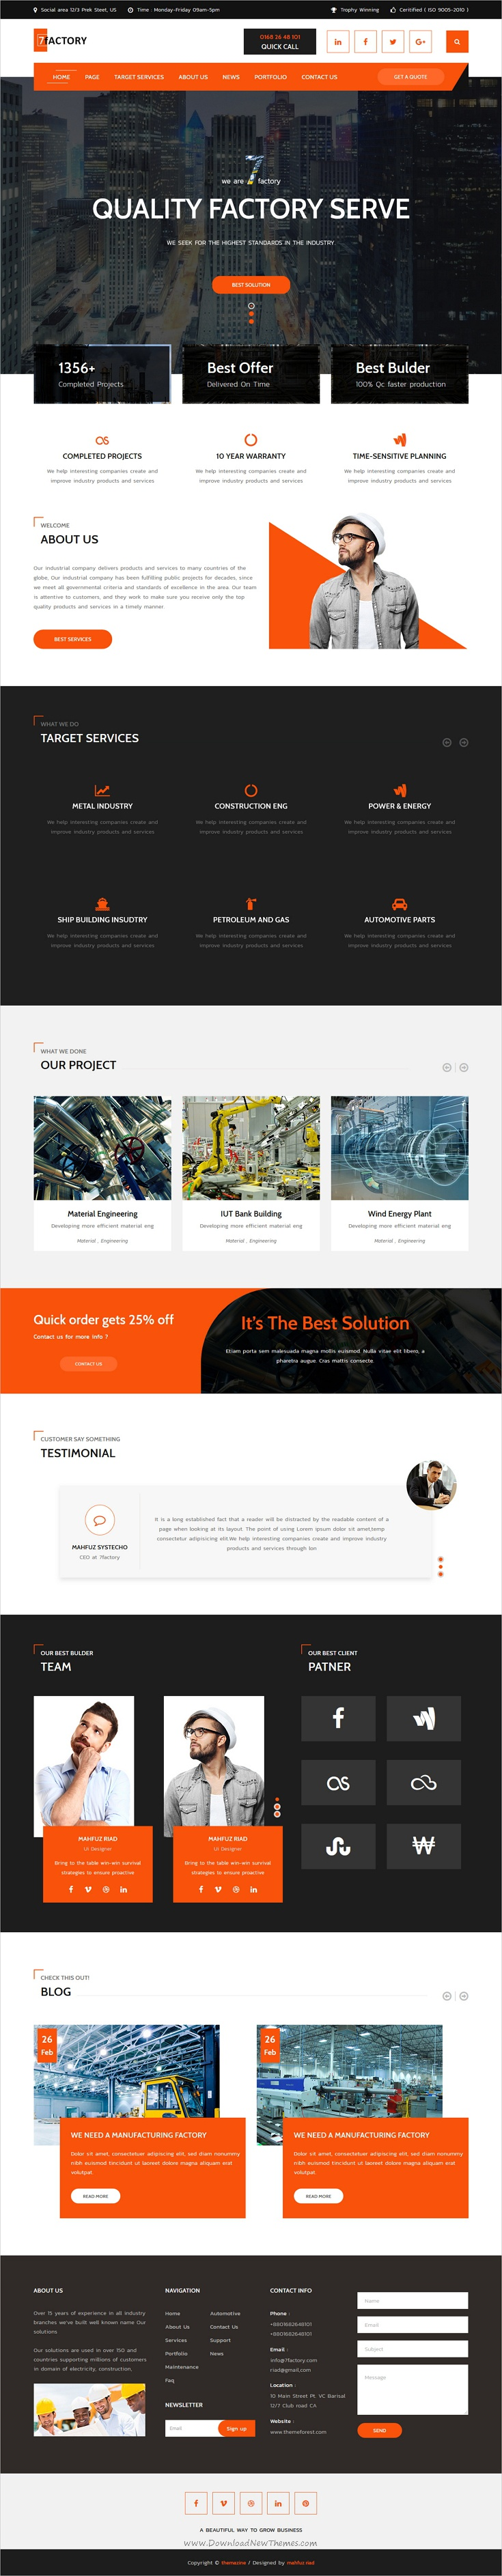 7factory Industrial Factory Manufacturing Html Template Web Design Web Layout Design Website Design Inspiration